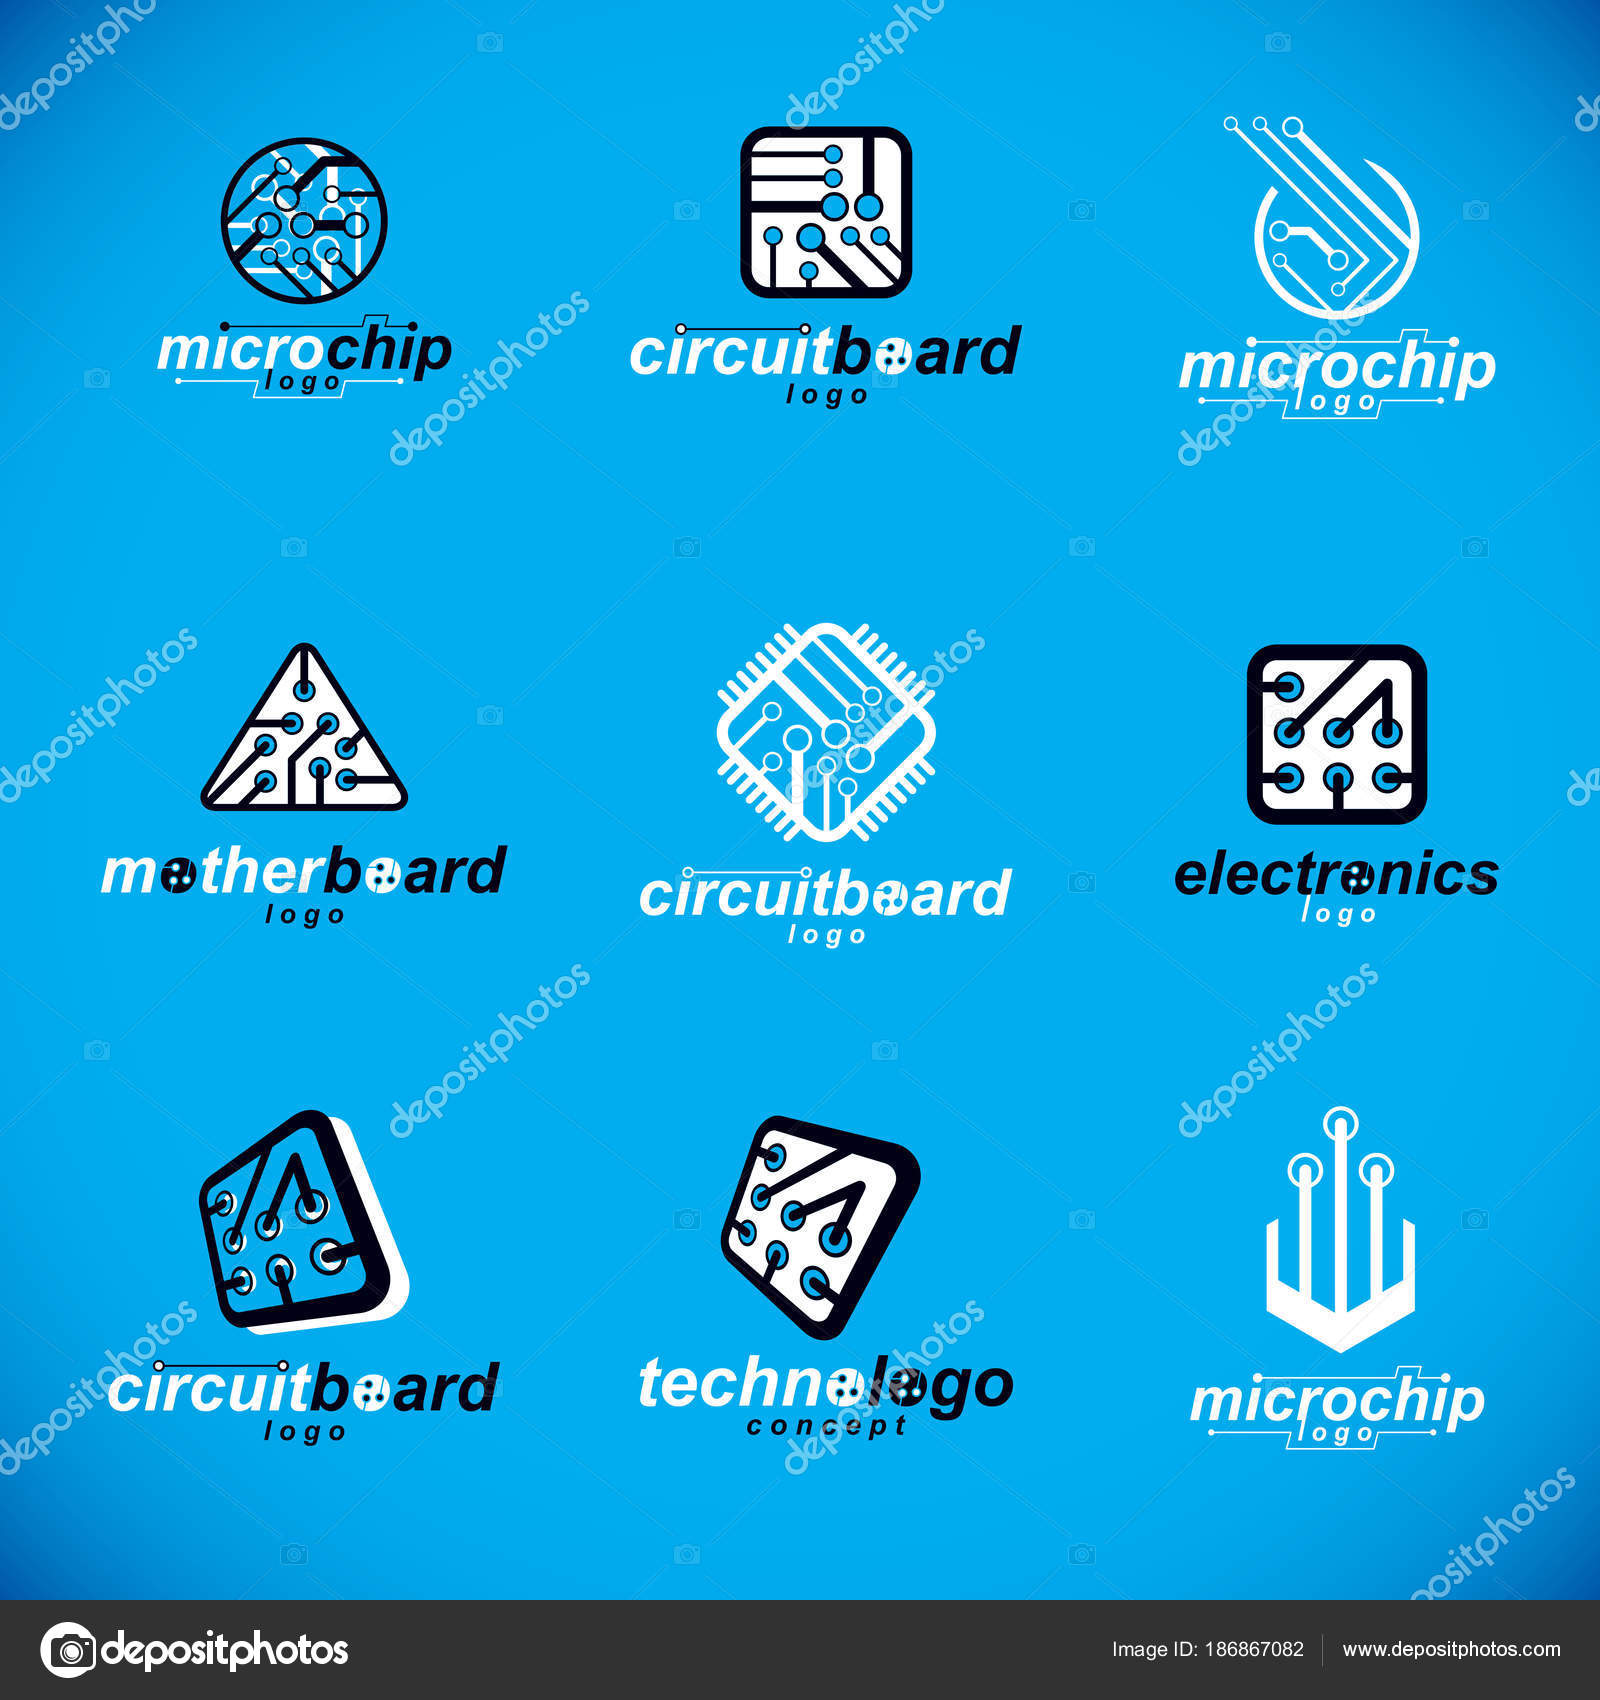 Technology Innovation Logos Set Vector Abstract Computer Circuit Board Logo Stock